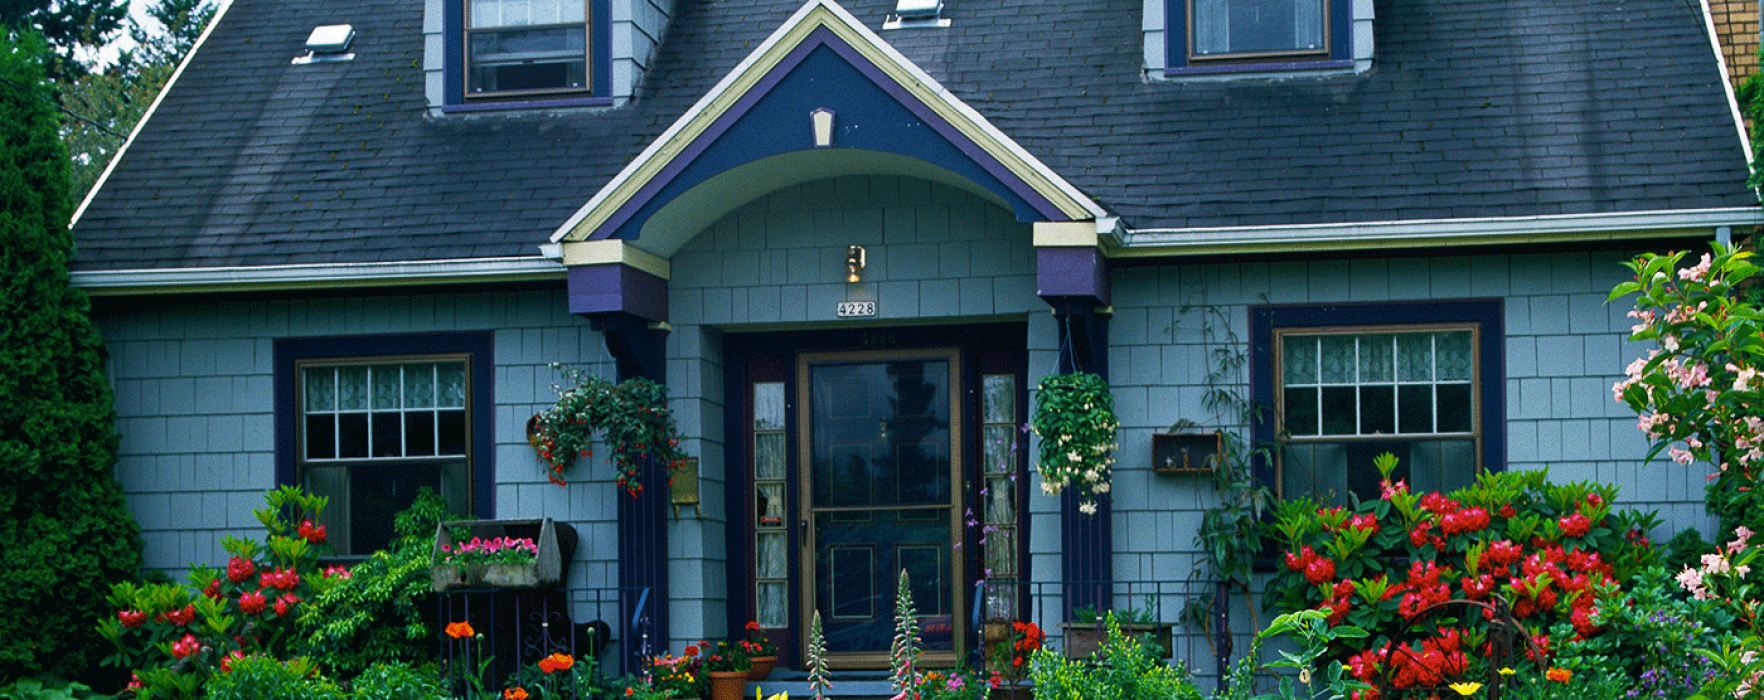 Welcoming front yard flower garden ideas better homes and gardens real estate life - Inviting door color ideas for welcoming the guests in sweeter way ...